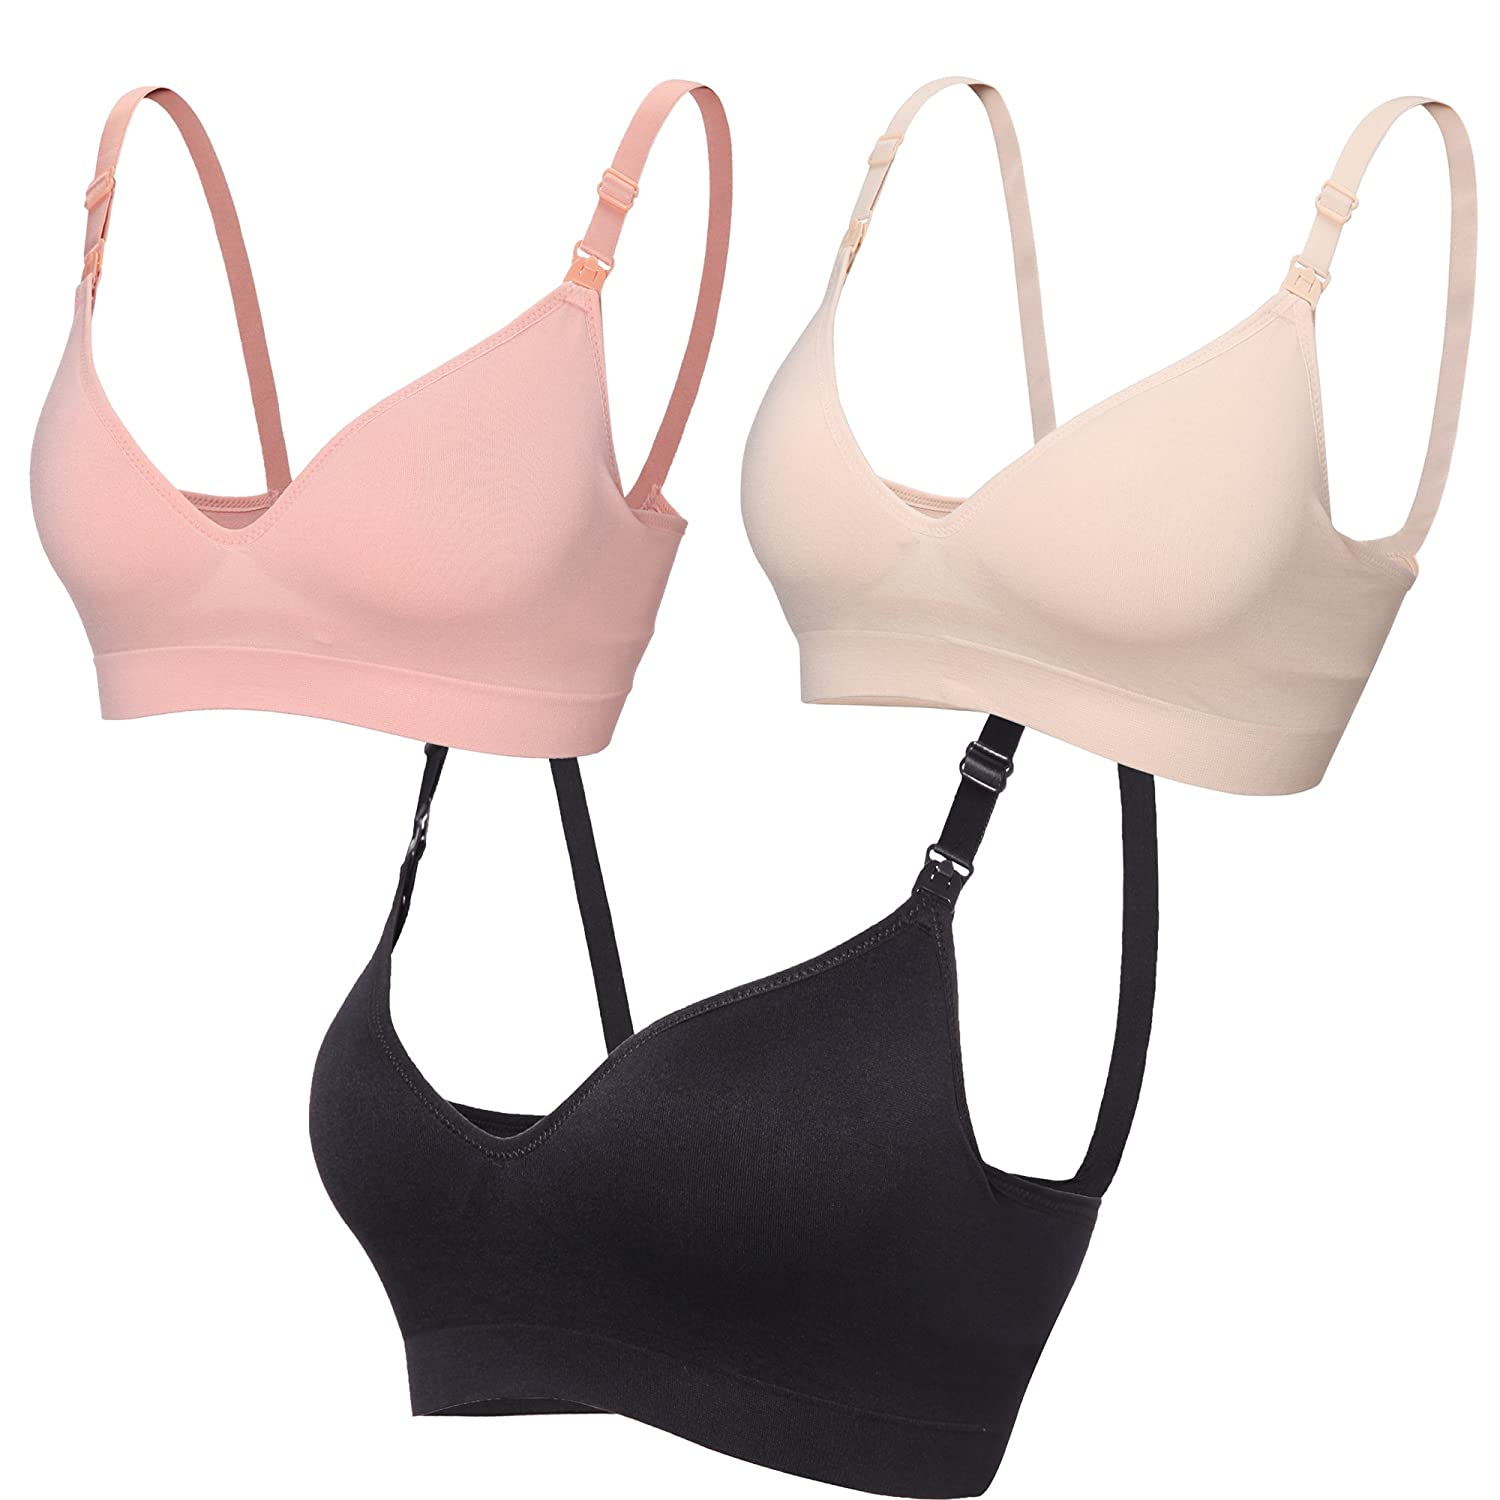 3Pack I Women's Seamless Nursing Maternity Bra Push up Comfort Sleep Bralette